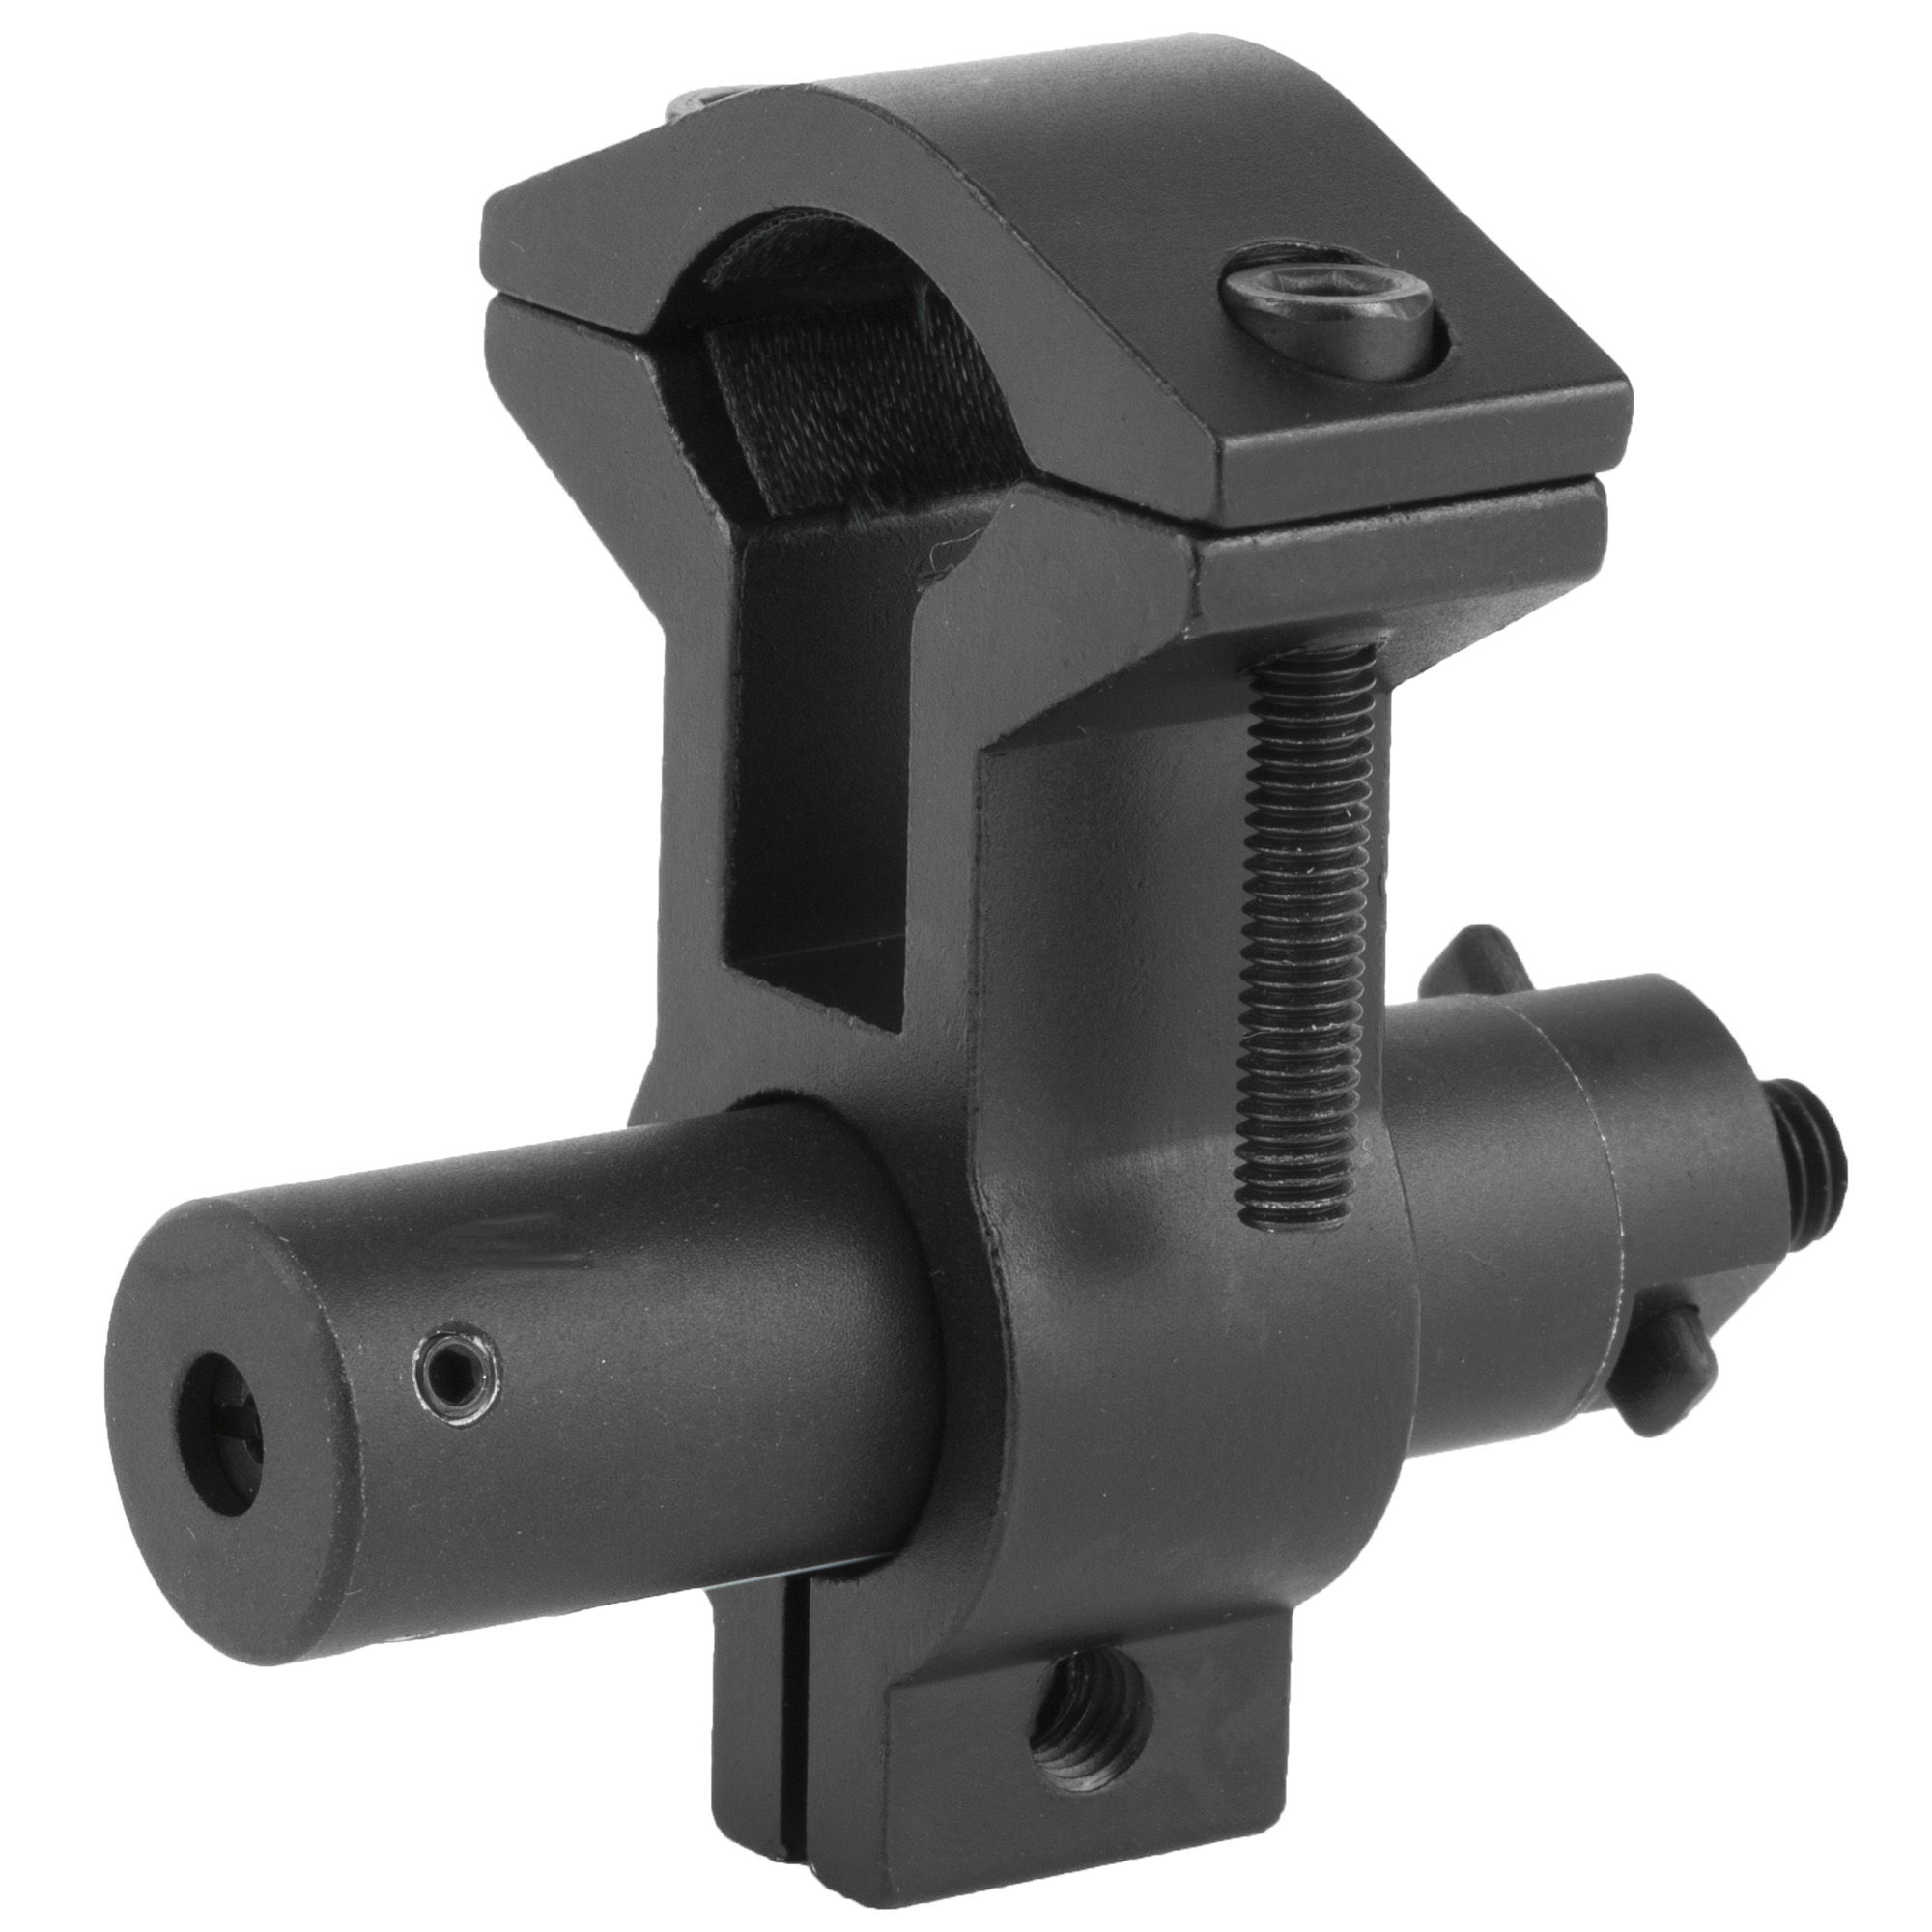 NCSTAR Rifle Red Laser With Universal Rifle Barrel Mount – Black